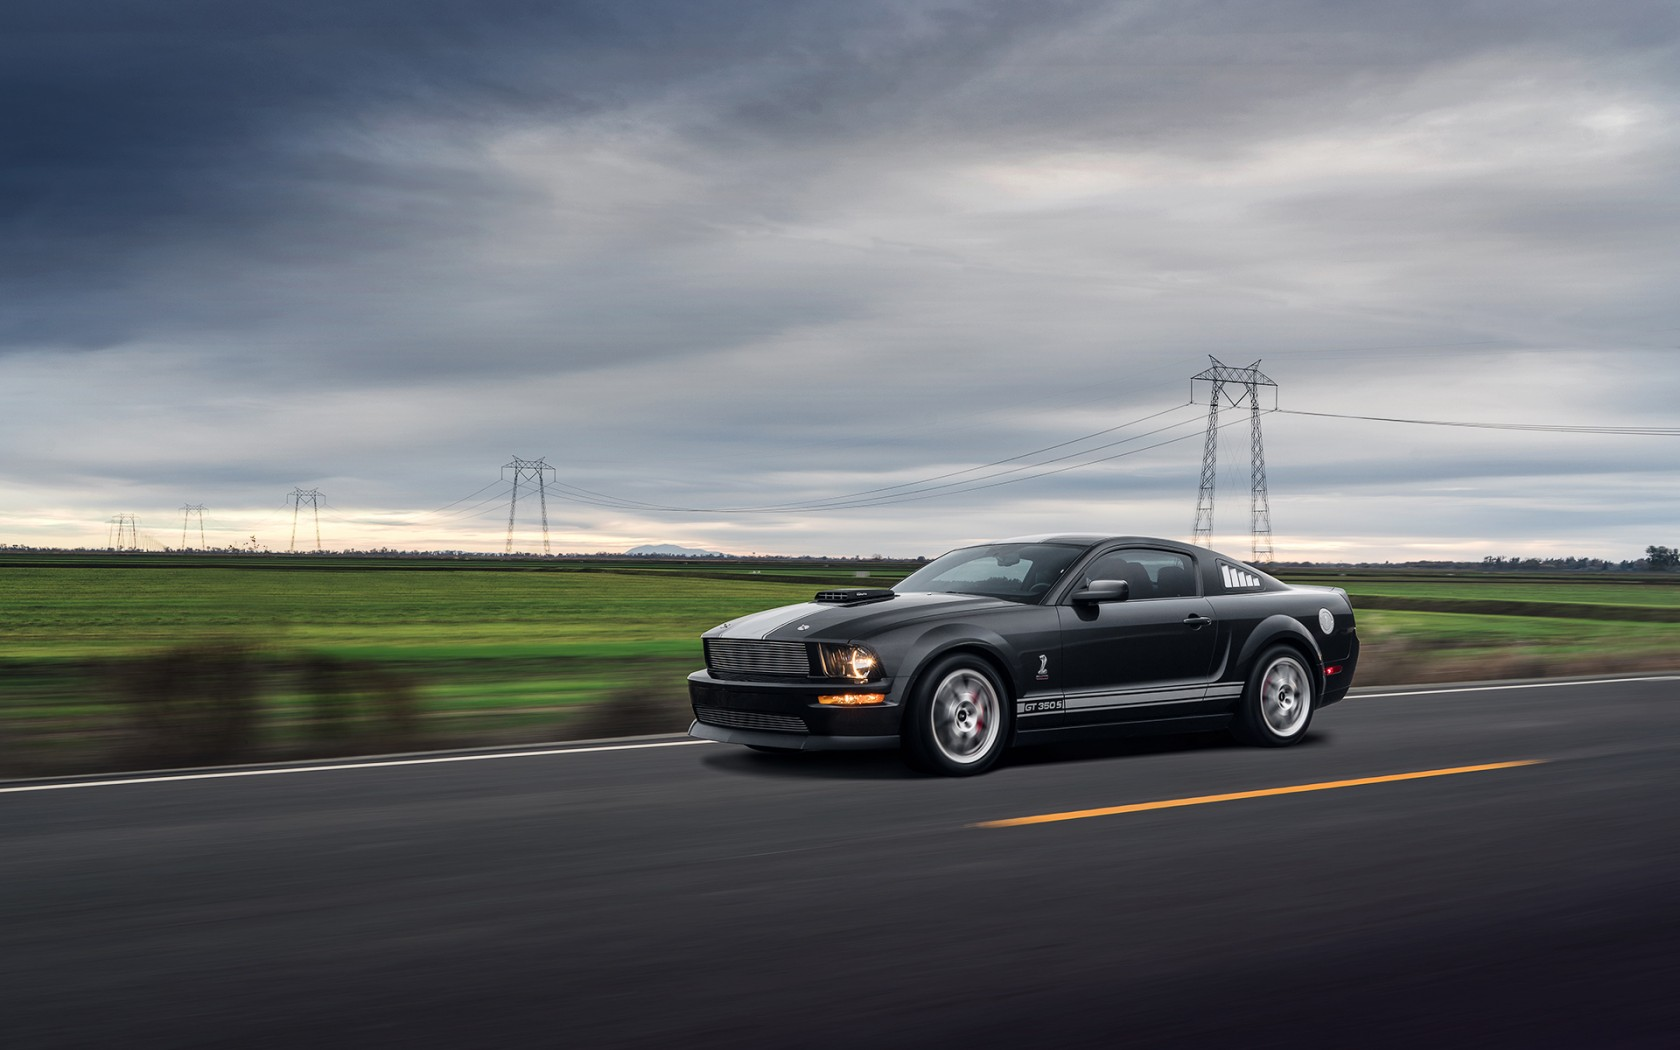 shelby mustang wallpaper - photo #31